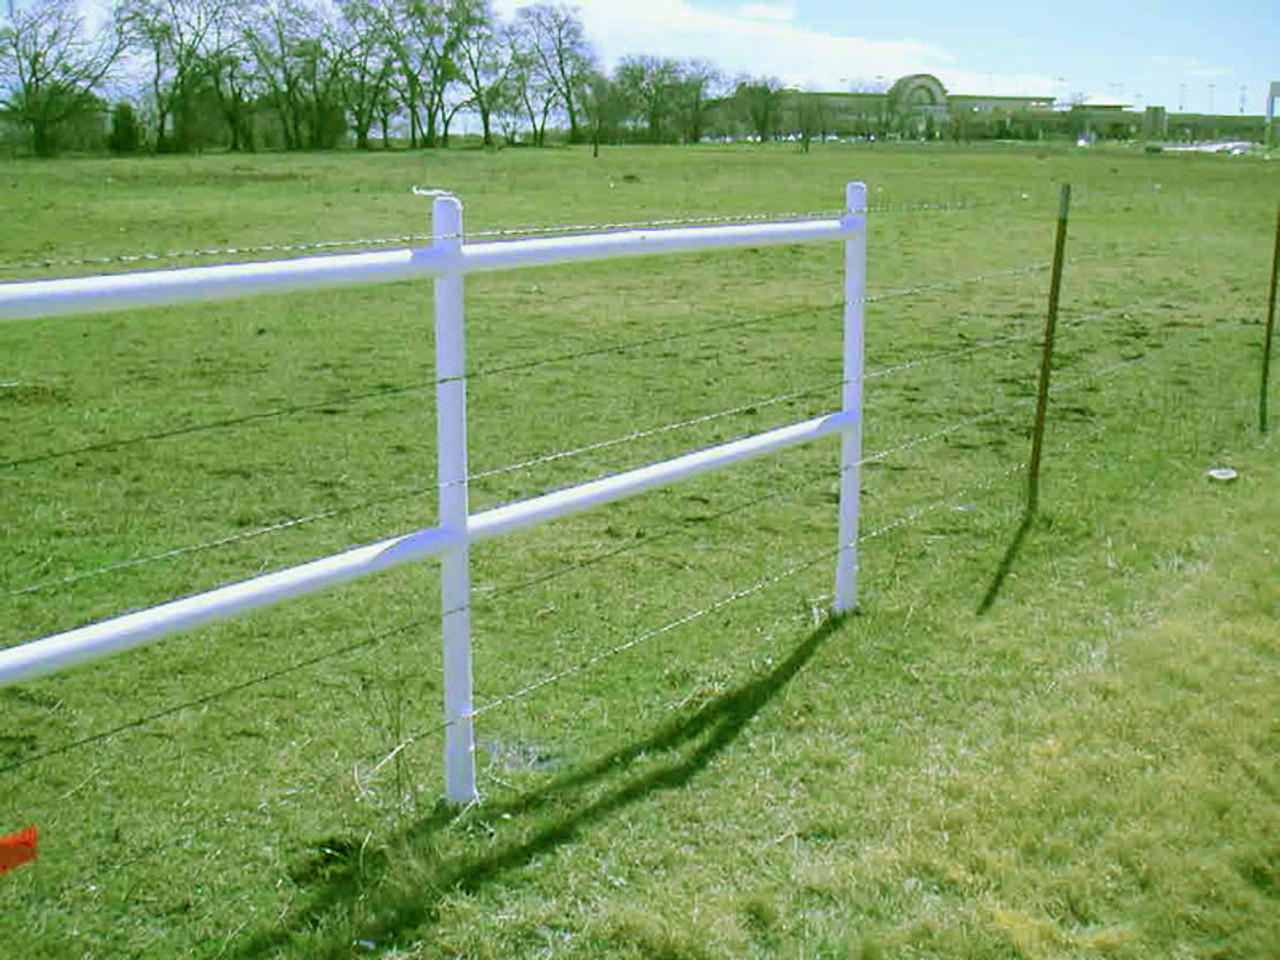 Steel Farm Fence Installed with the ISW-850 Post Anchor from OZCO Building Products